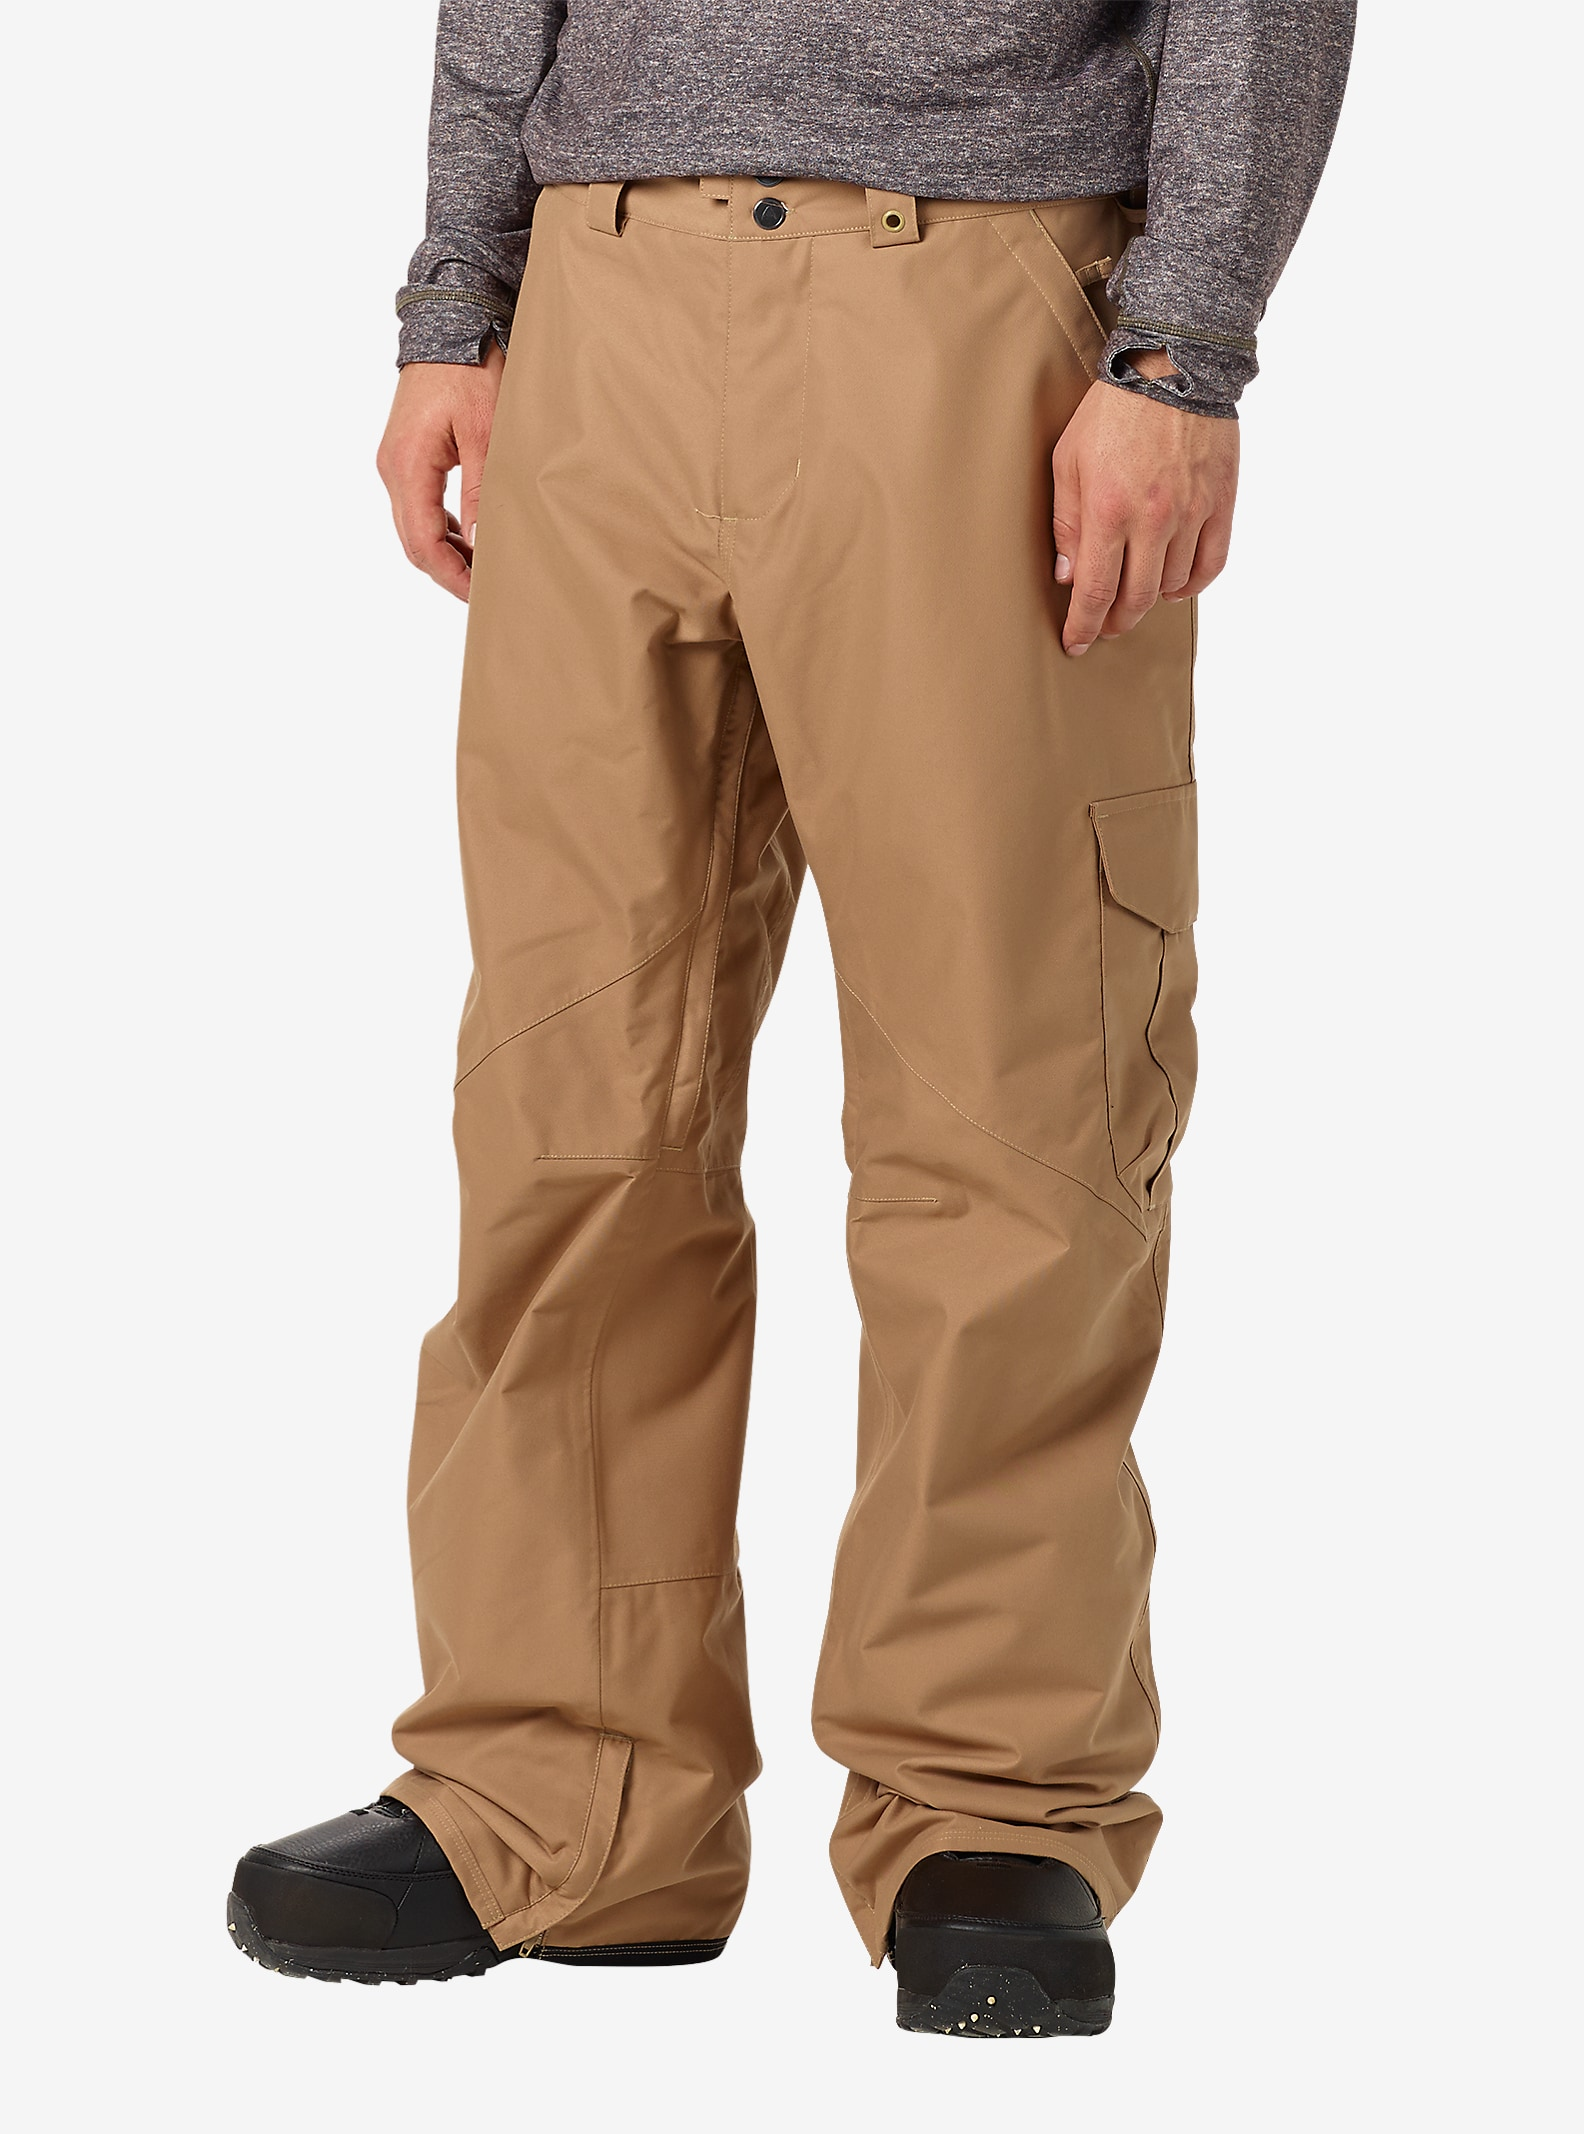 Burton Cargo Pant - Regular Fit shown in Kelp